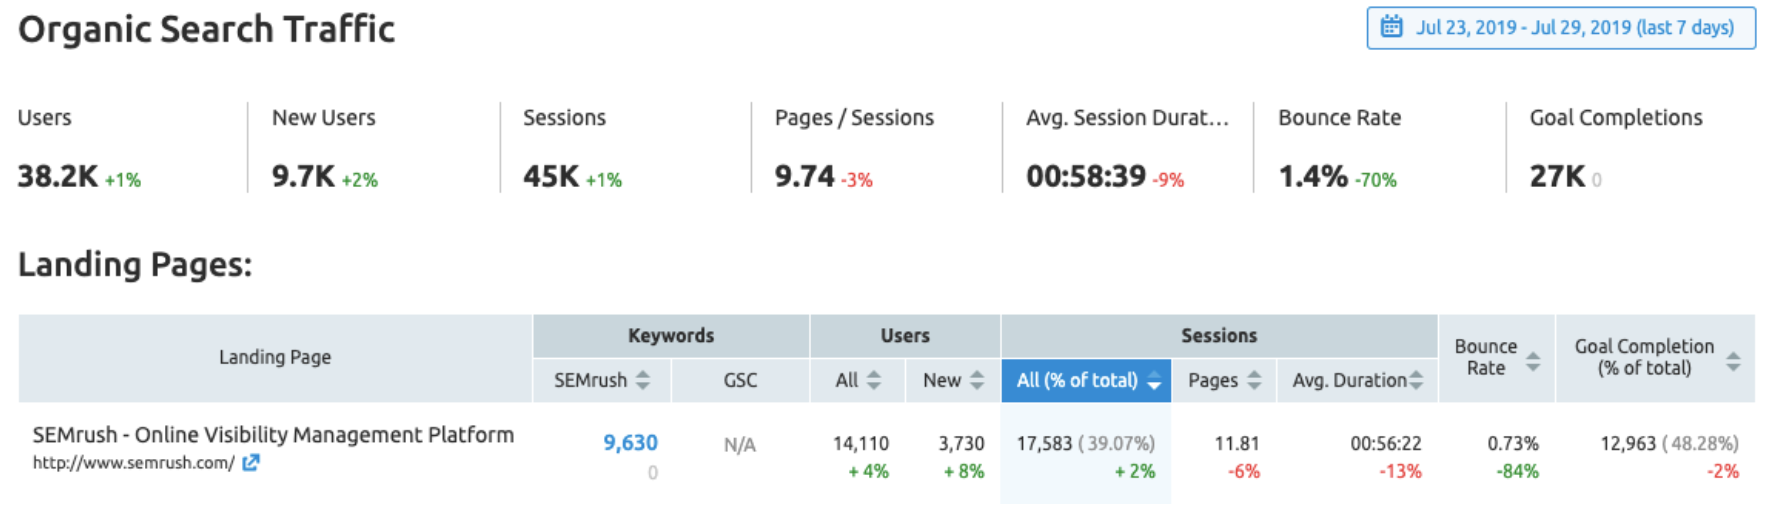 Organic Traffic Insights